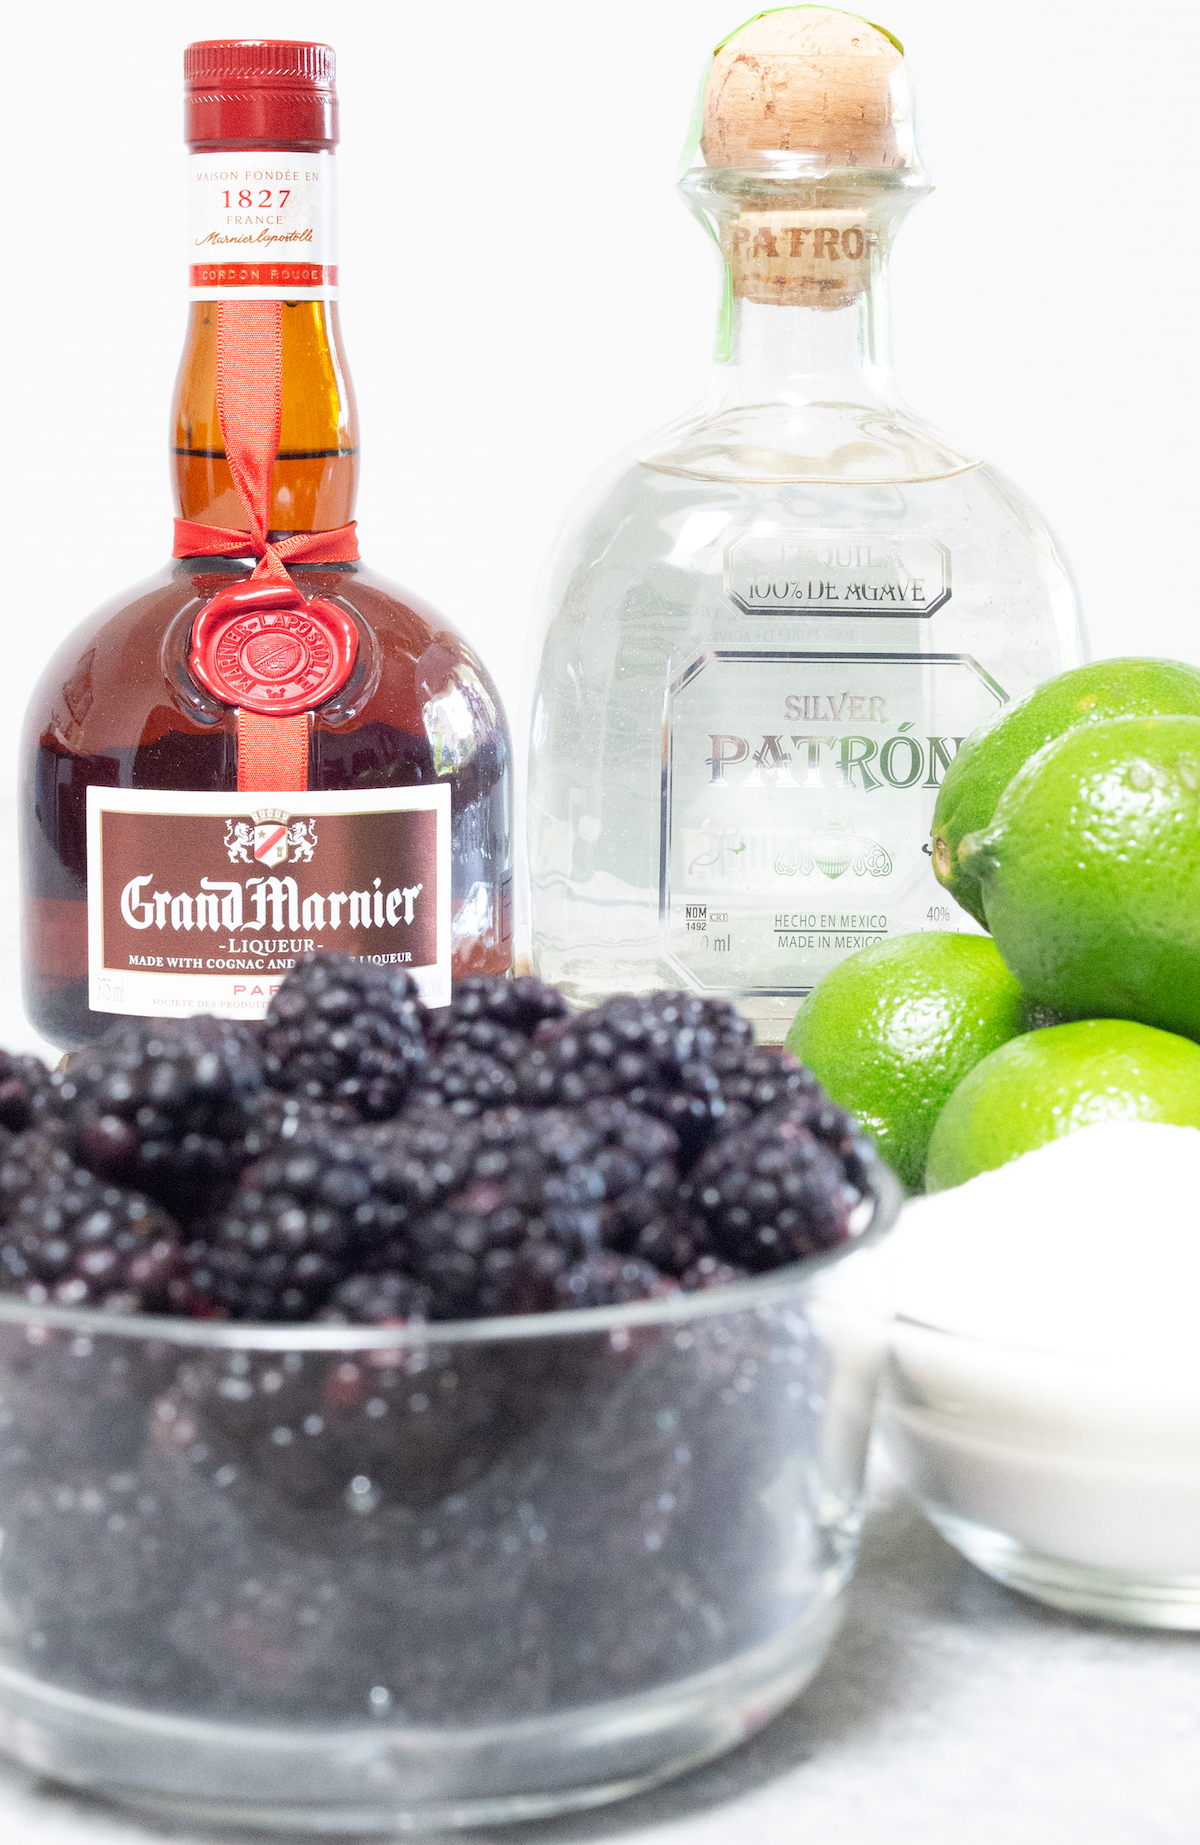 The ingredients for blackberry margaritas on a white background. Grand marnier, Patron, blackberries, limes, and sugar.